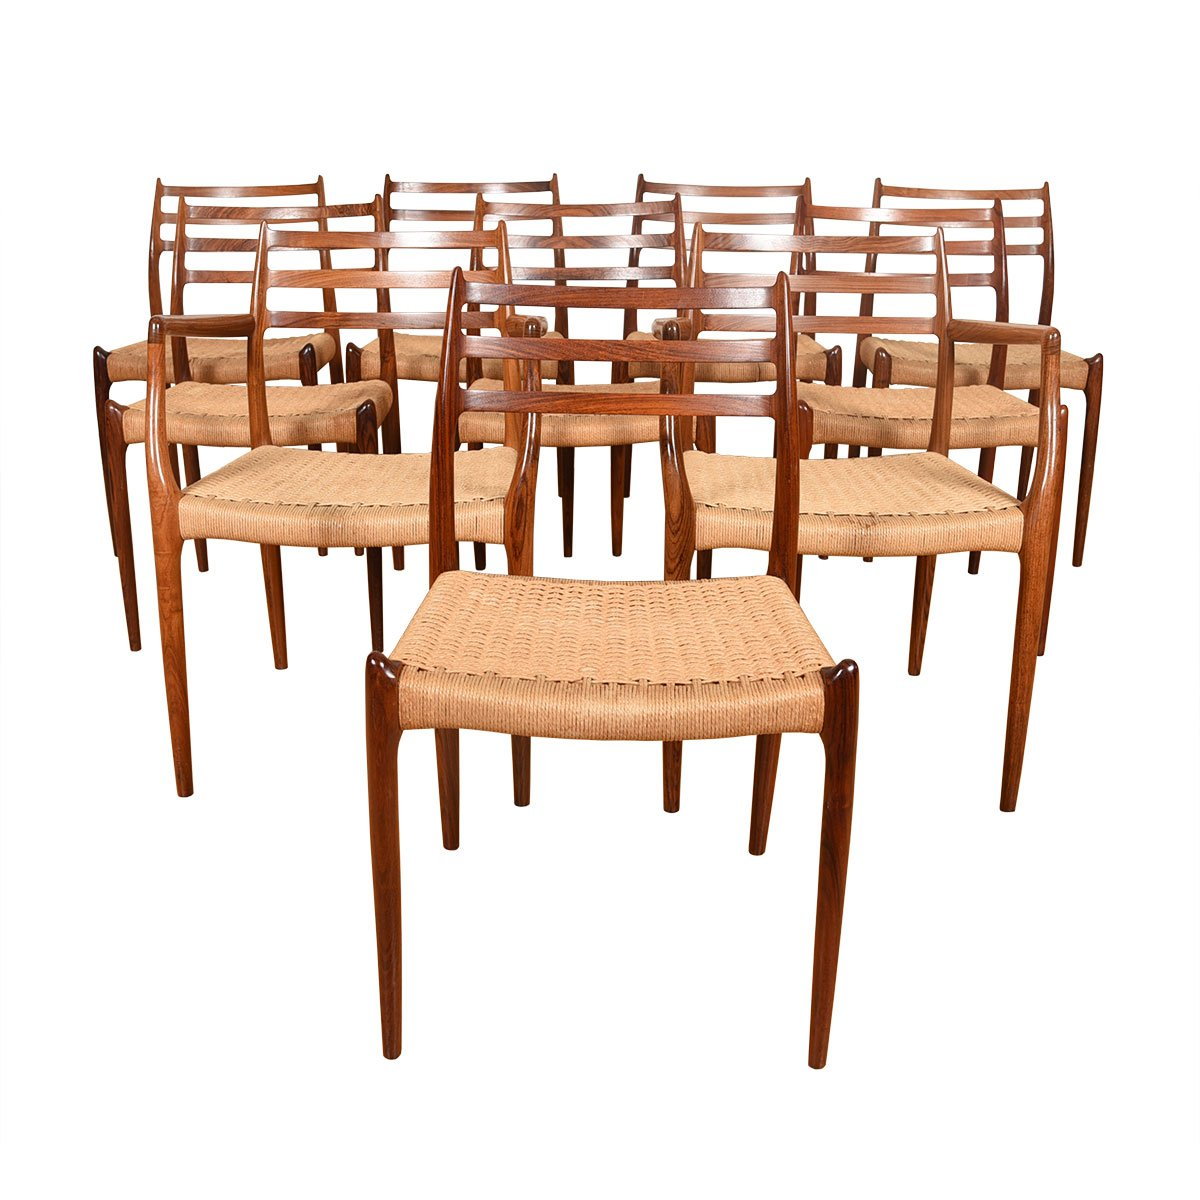 Niels Møller Set of 10 Danish Rosewood Dining Chairs